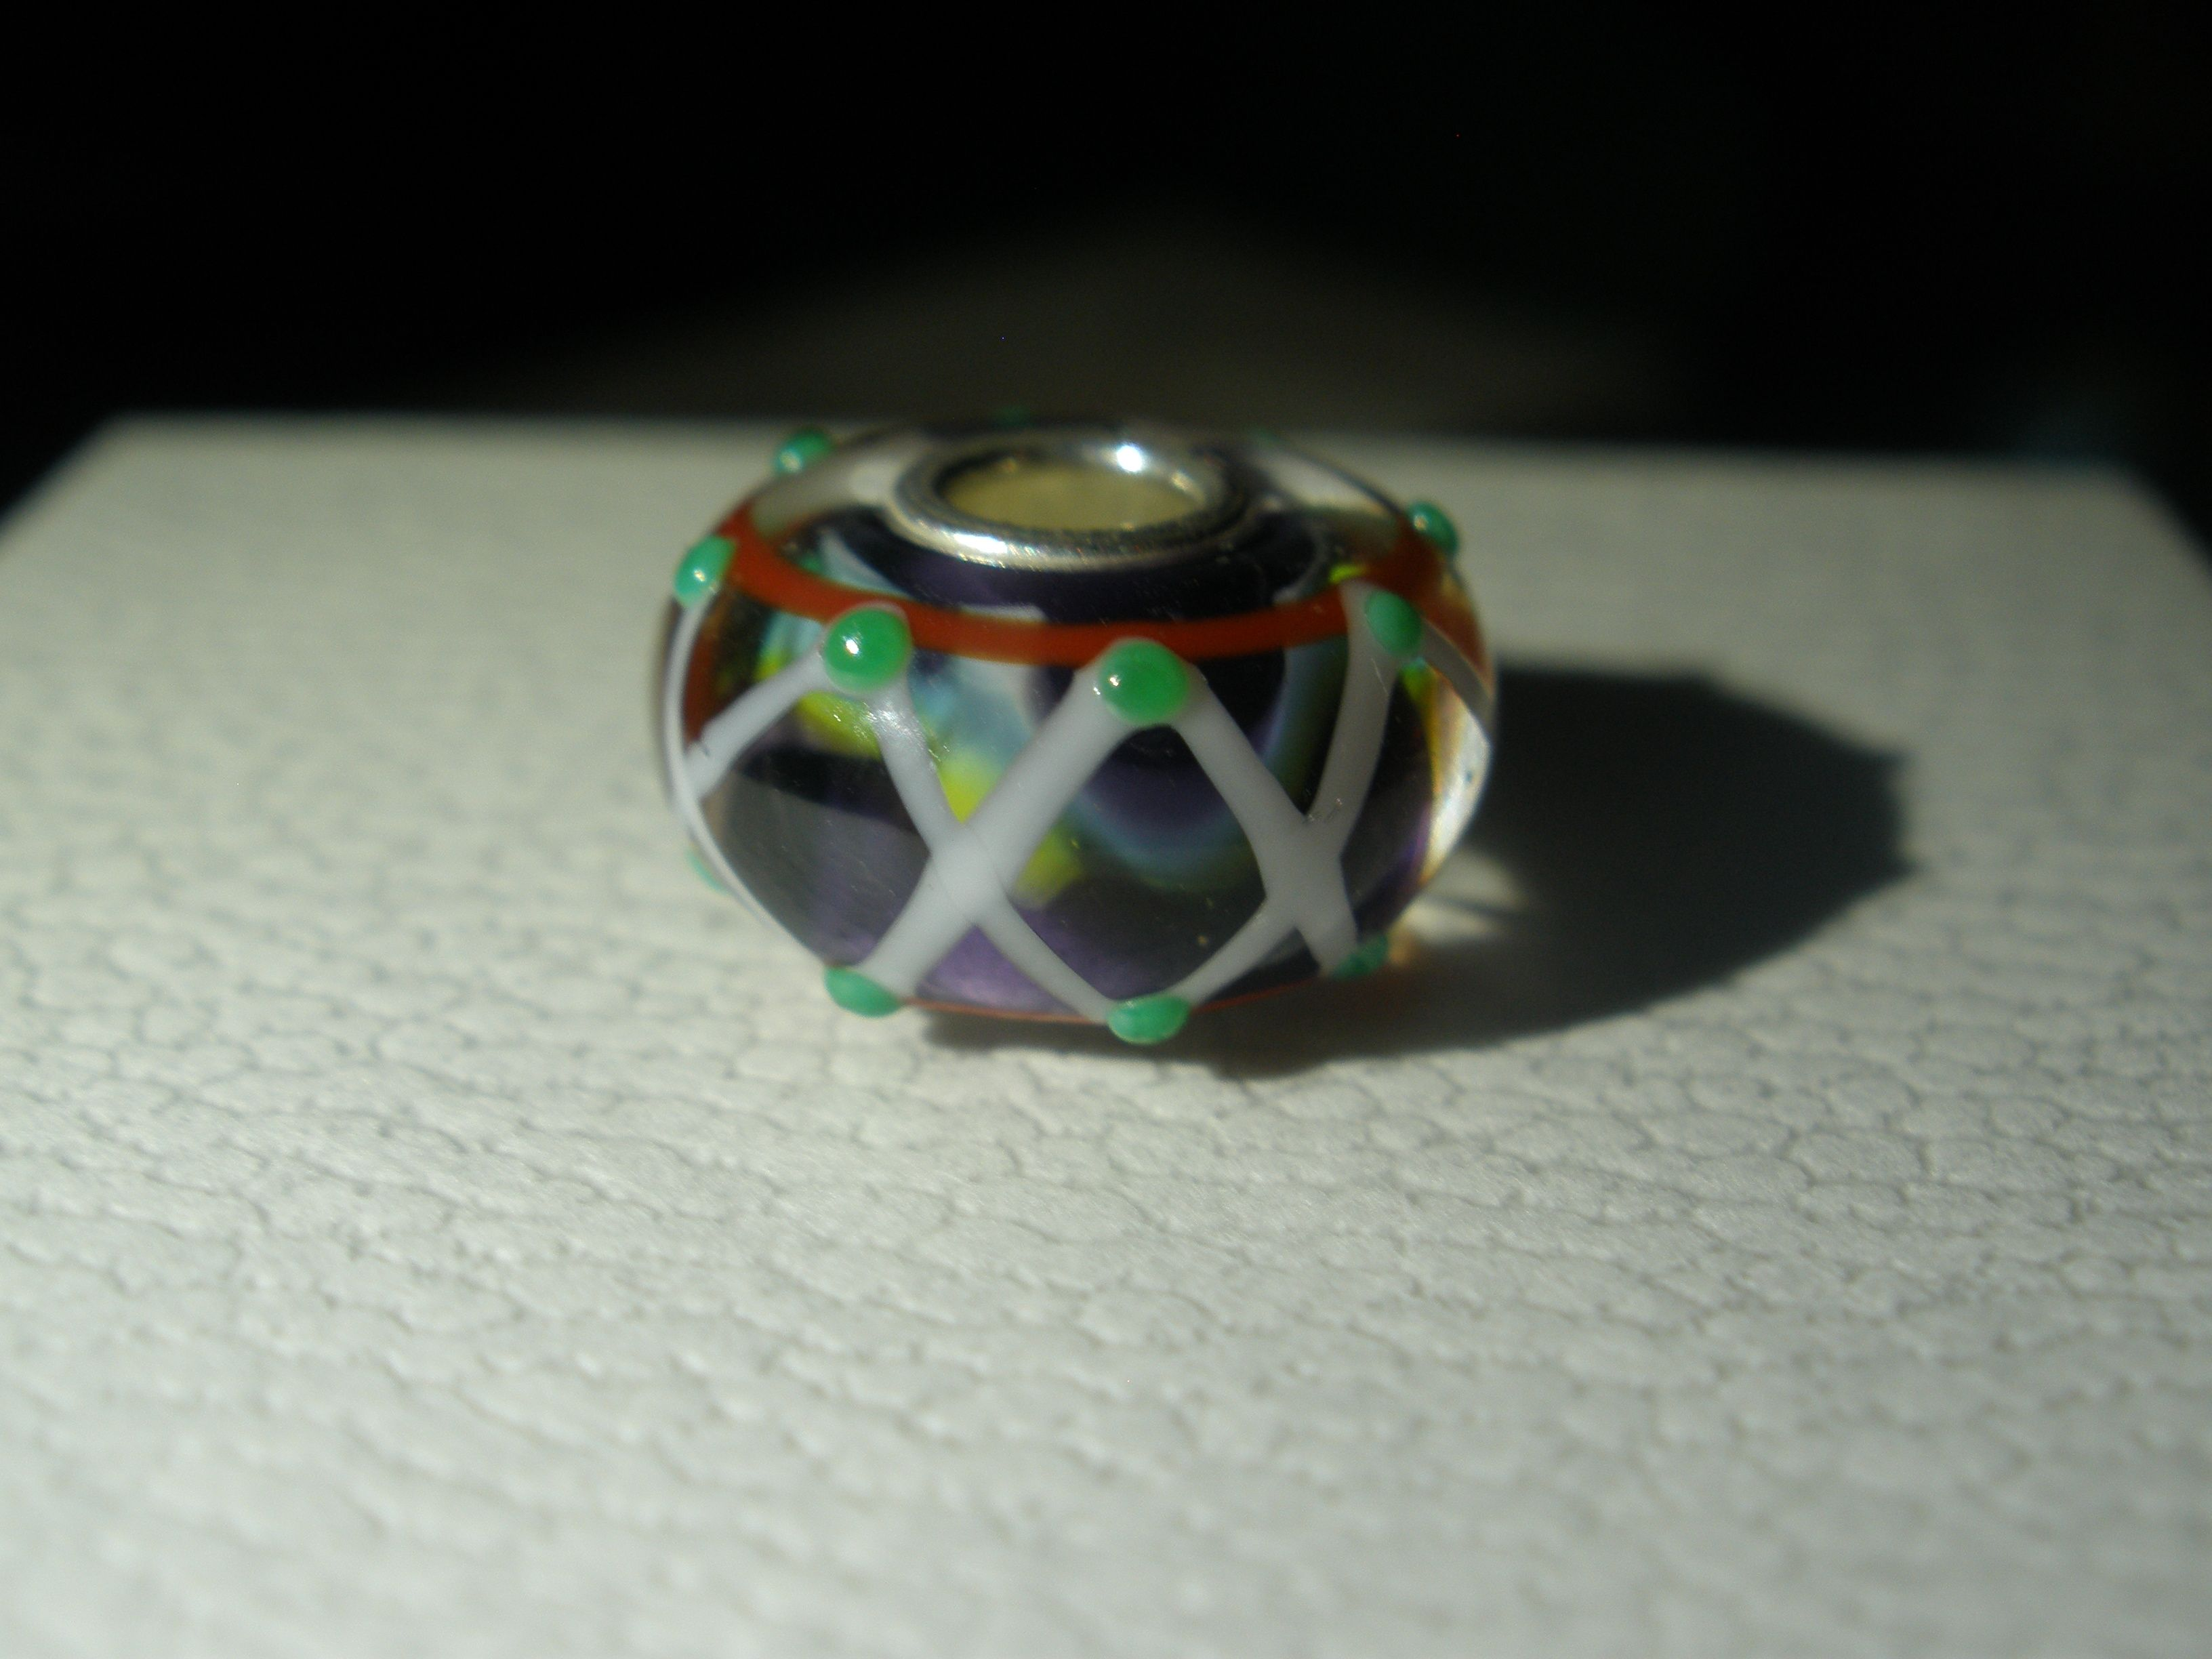 Trollbead Unique  Green dot lattice with multi-color core purchased from Trollbeads at South Park via fb April 2015